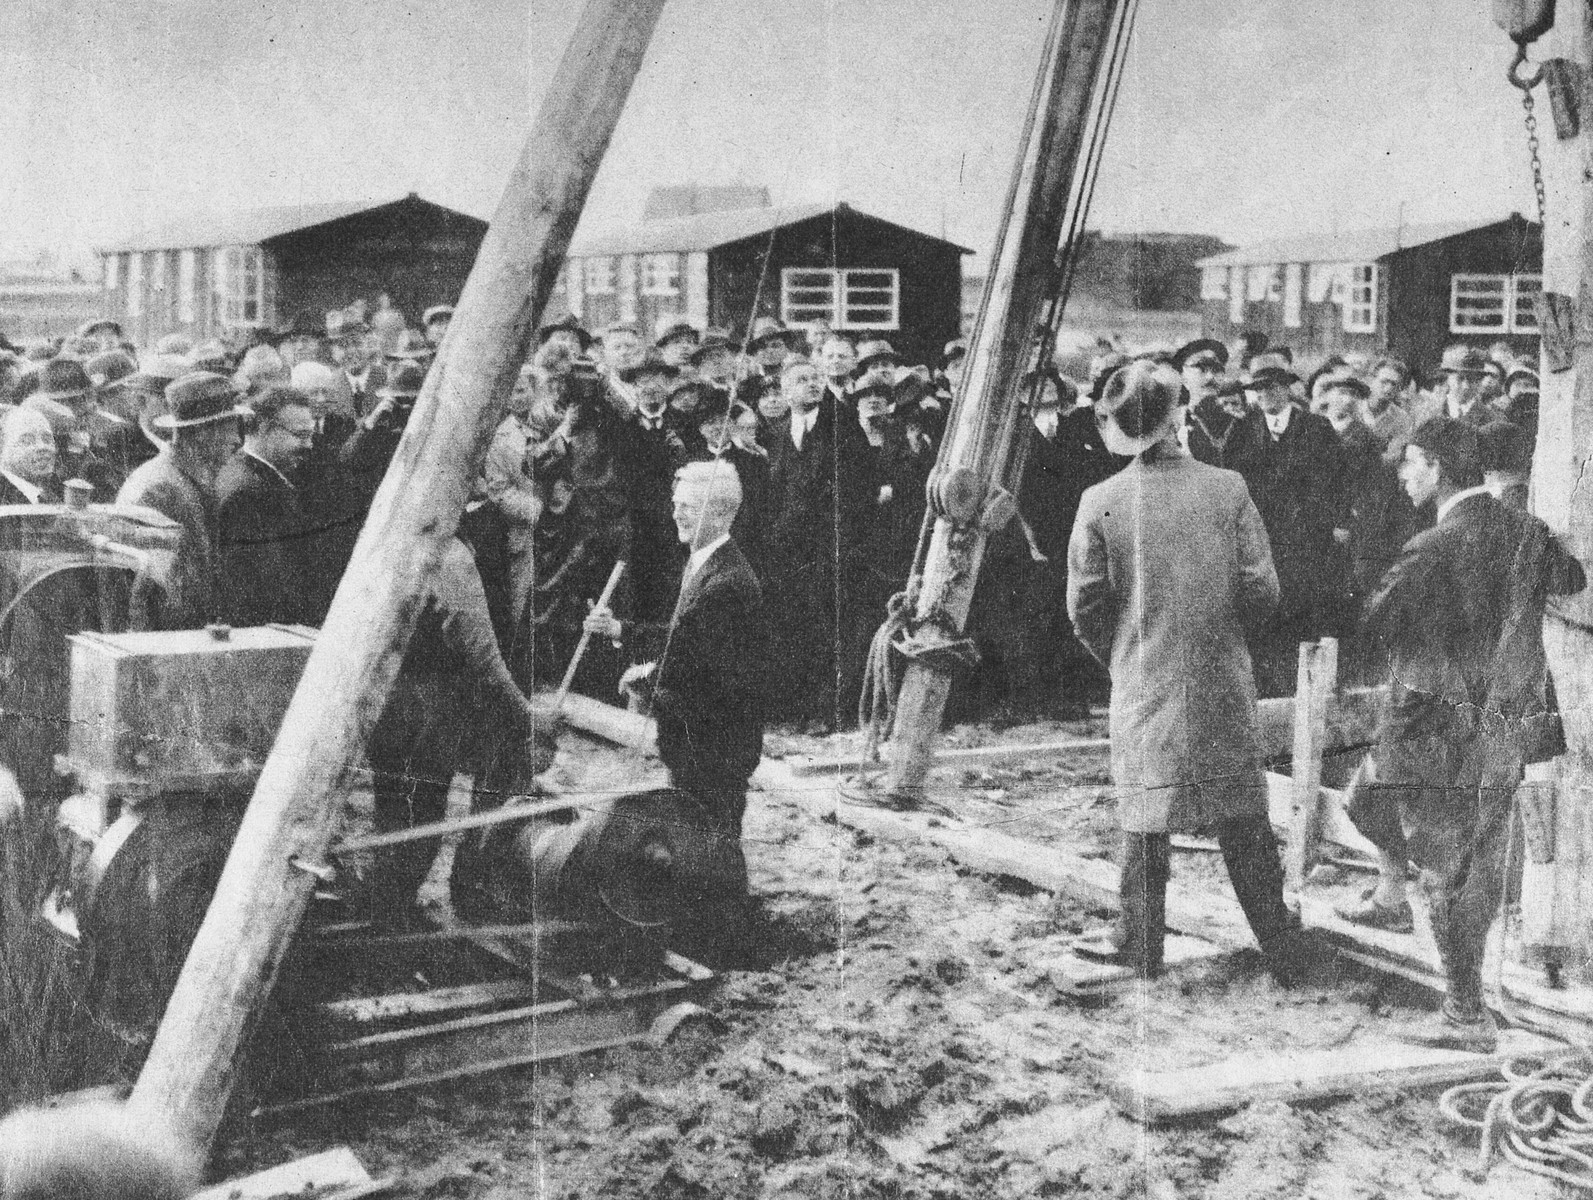 """Photo clipping from the New York Times, Photogravure Picture Section, October 21, 1934, depicting James G. McDonald, League of Nations High Commissioner on Refugees, attending a groundbreaking ceremony on October 3, for a new village, Werkdorp Wieningemeer, on the Zuyder Zee in the Netherlands.  The original New York Times caption reads: """"Holland offers asylum to the exiles from Germany: James G. McDonald, High Commissioner of the League of Nations for German Refugees, drives the first pile into the ground as work starts on a new village to be built on land reclaimed from the Zuyder Zee."""""""